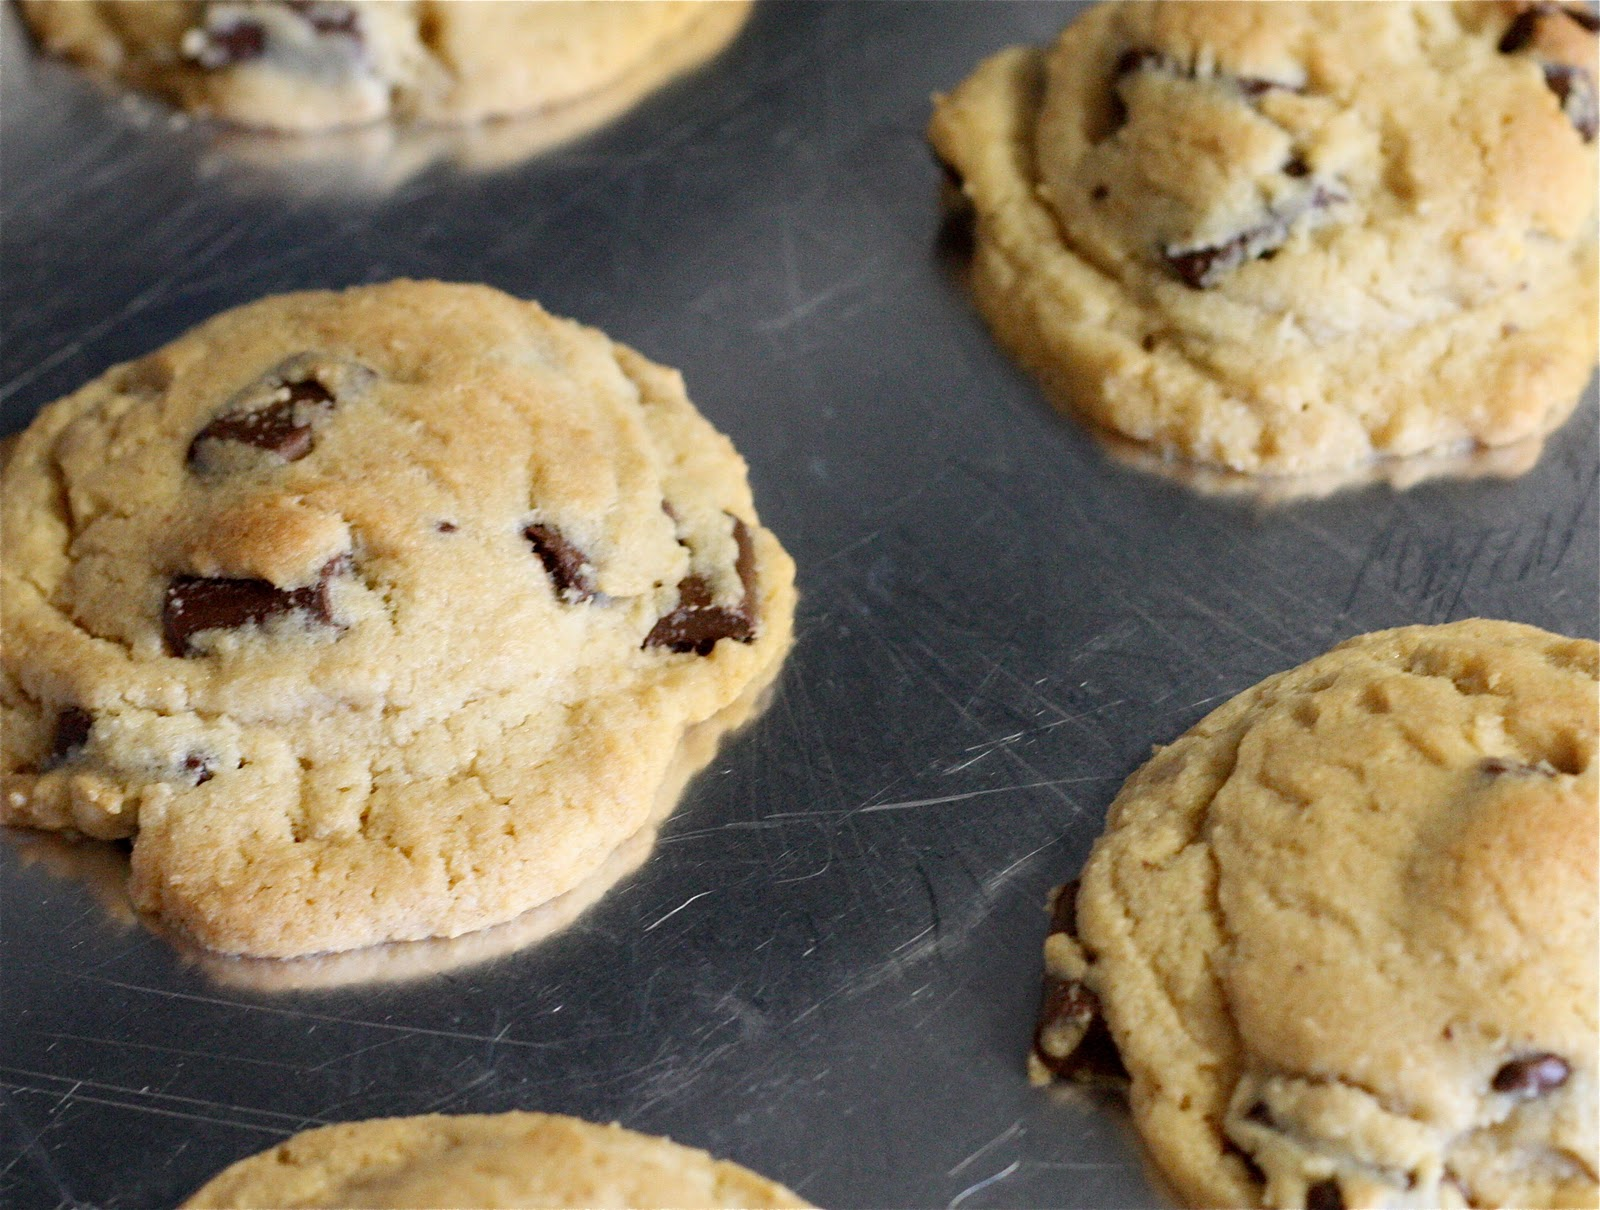 keeping it together: my favorite chocolate chip cookies